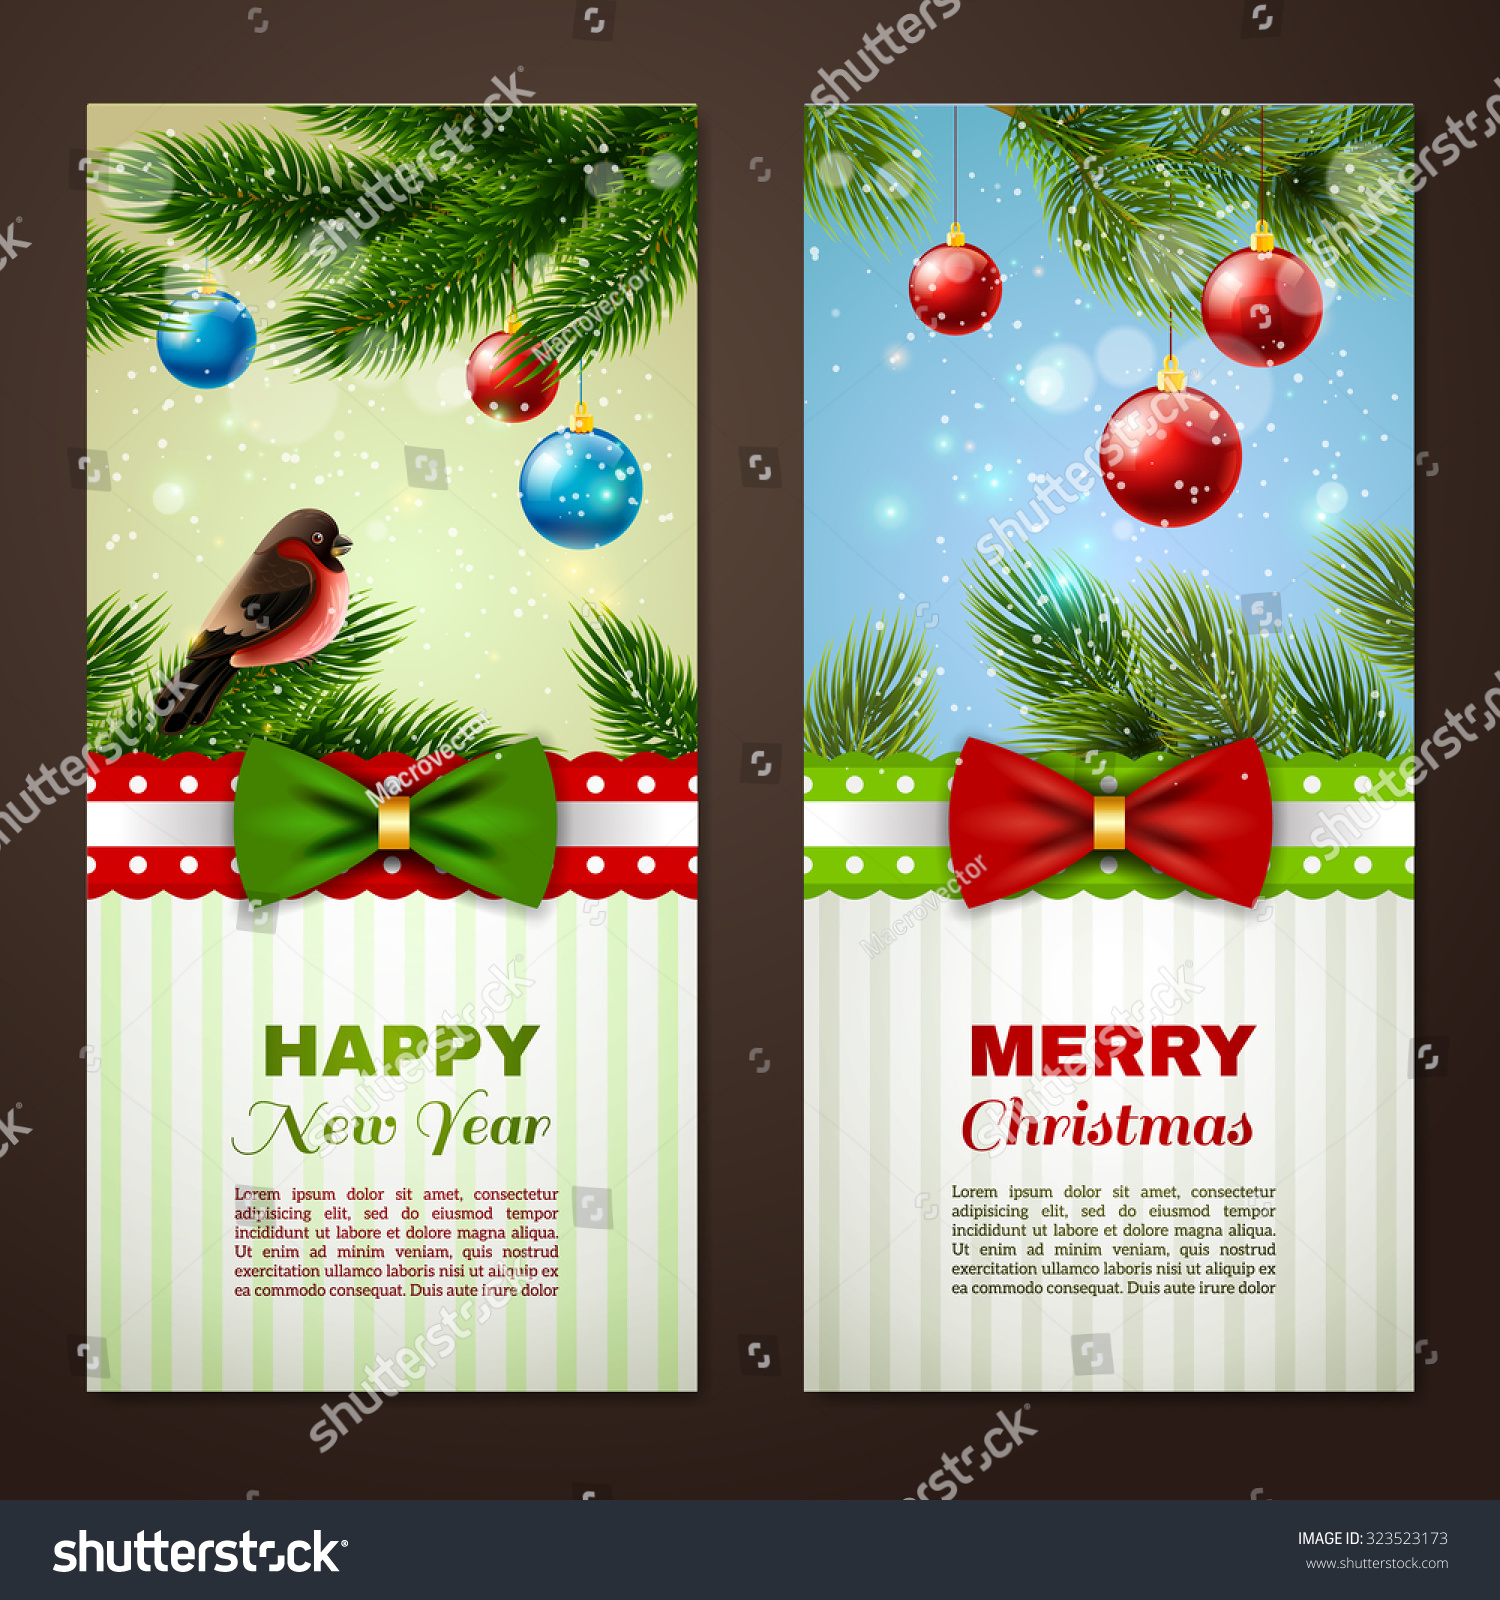 christmas and new year season classic greetings cards samples 2 vertical banners set abstract isolated vector